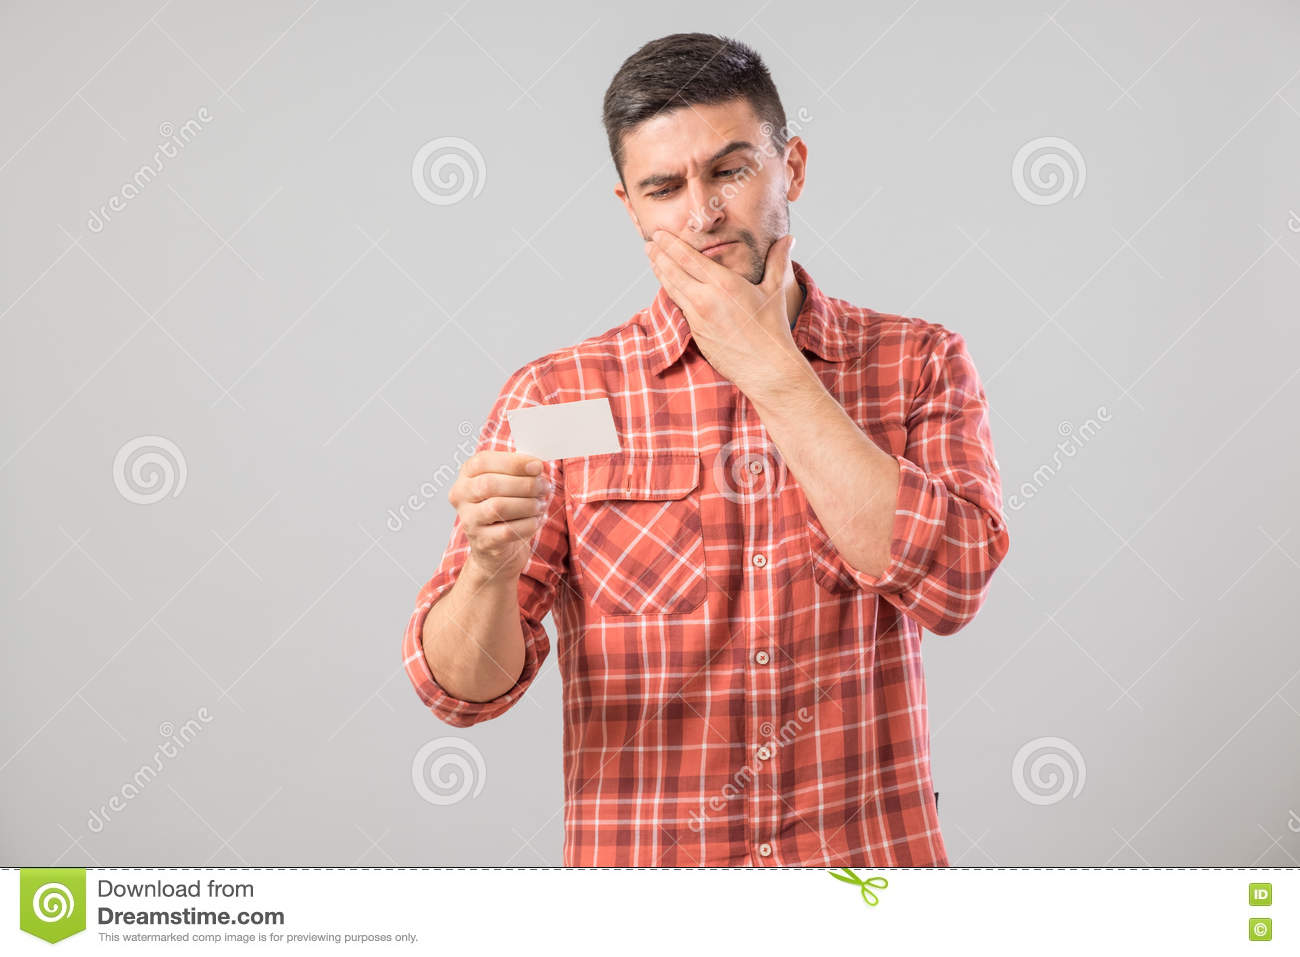 Young Man Reading Business Card Stock Image - Image: 74806655